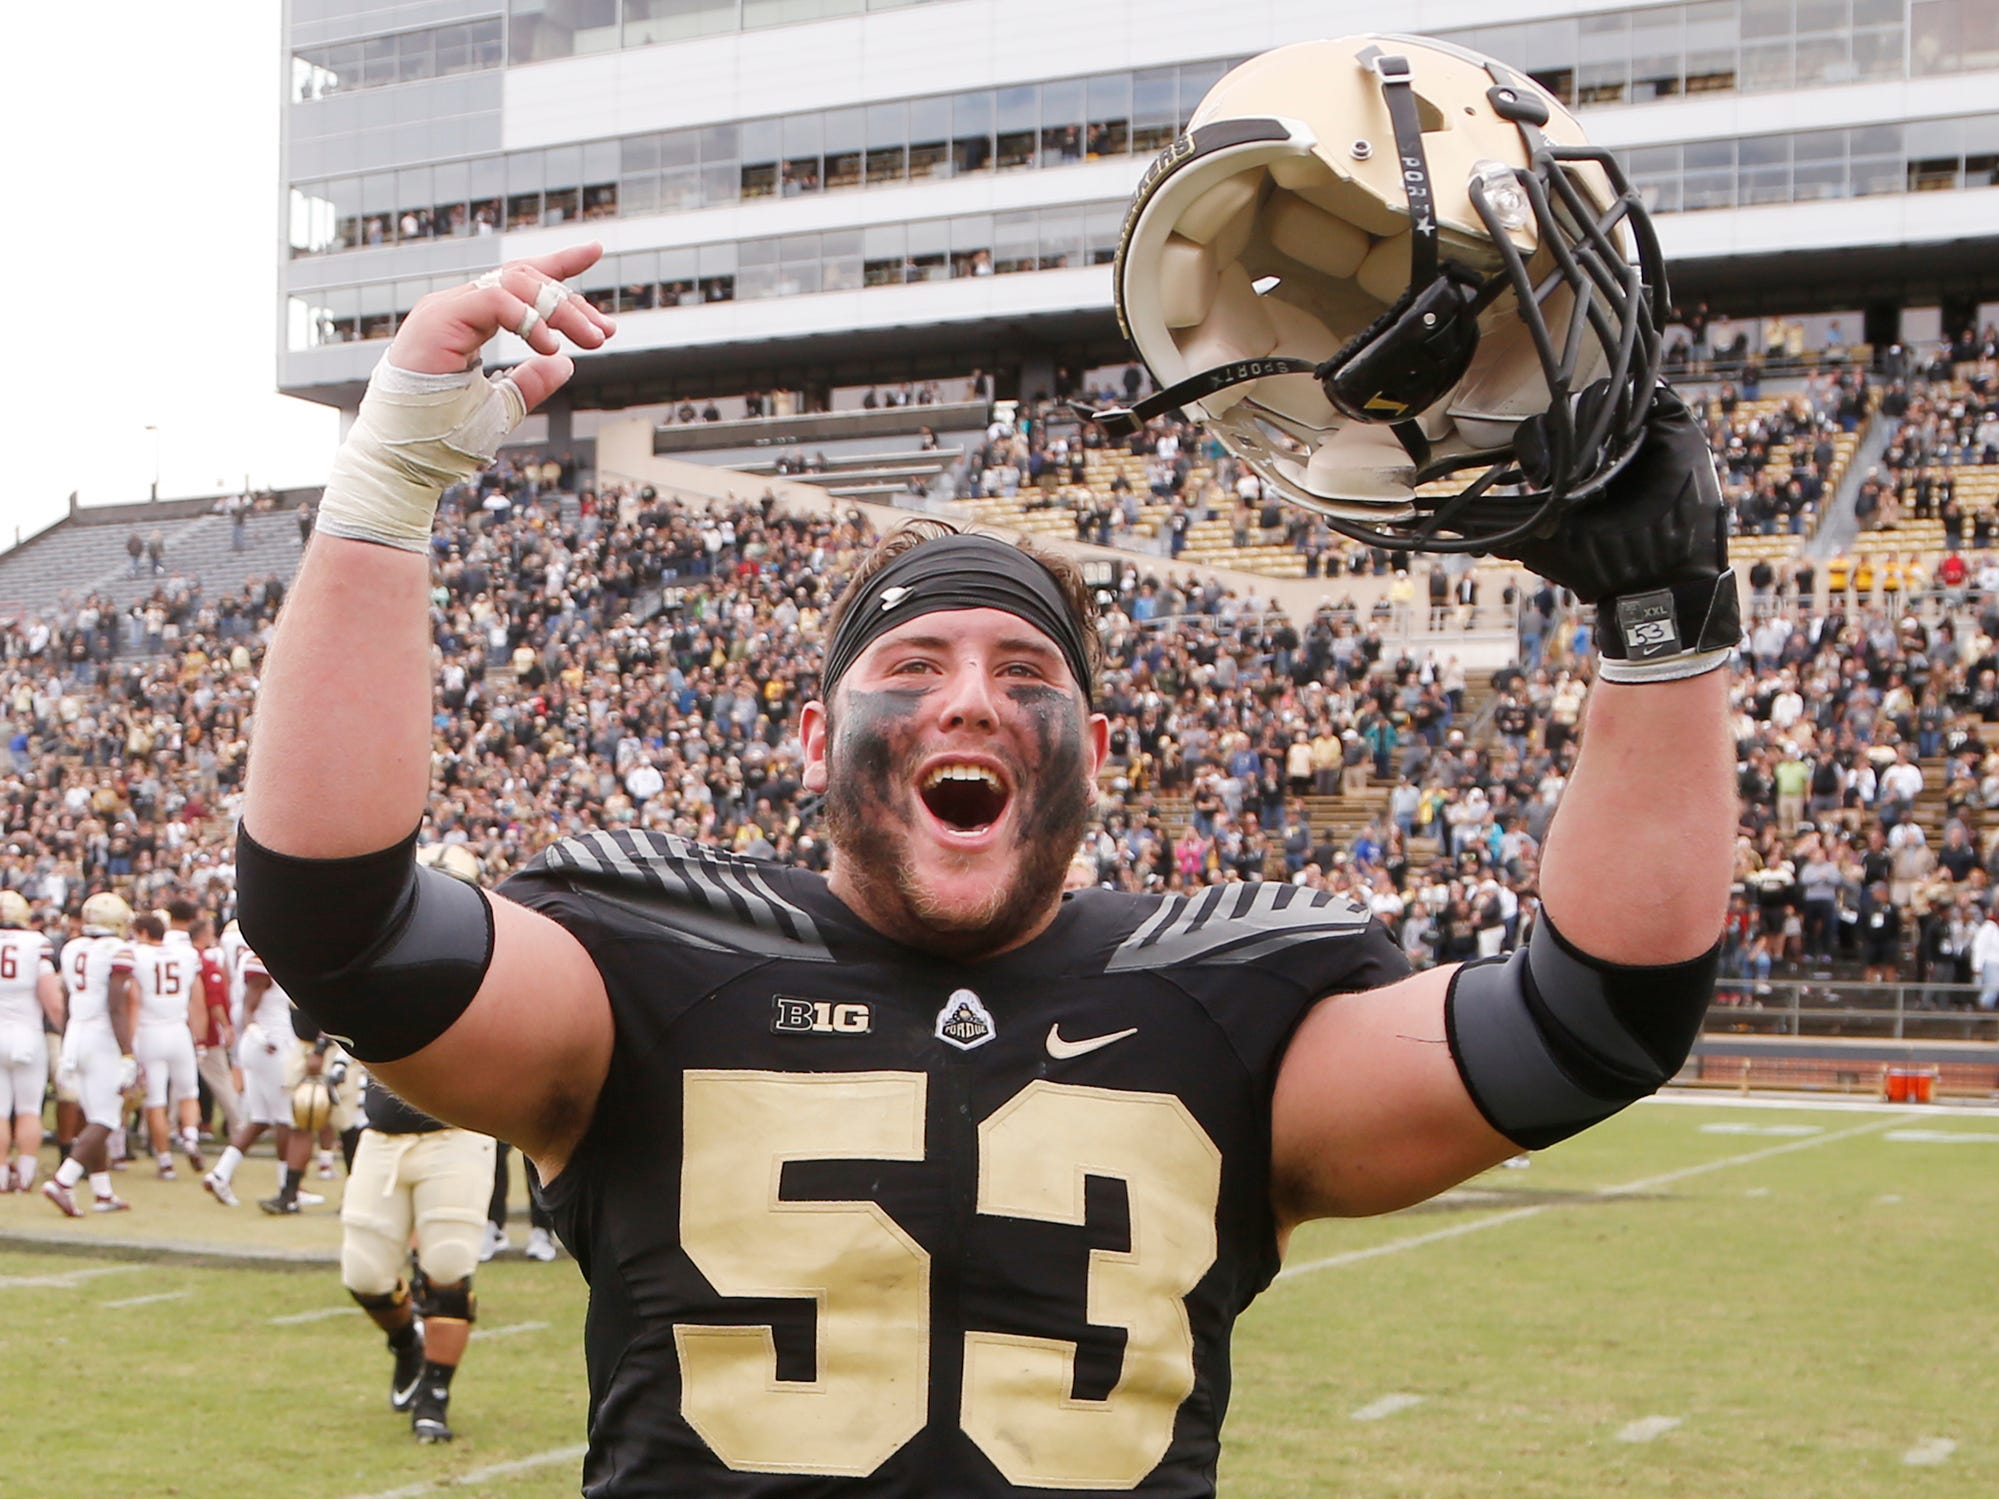 Purdue center Kirk Barron celebrates after the Boilermakers defeated Boston College 30-13 Saturday, September 22, 2018, in Ross-Ade Stadium.